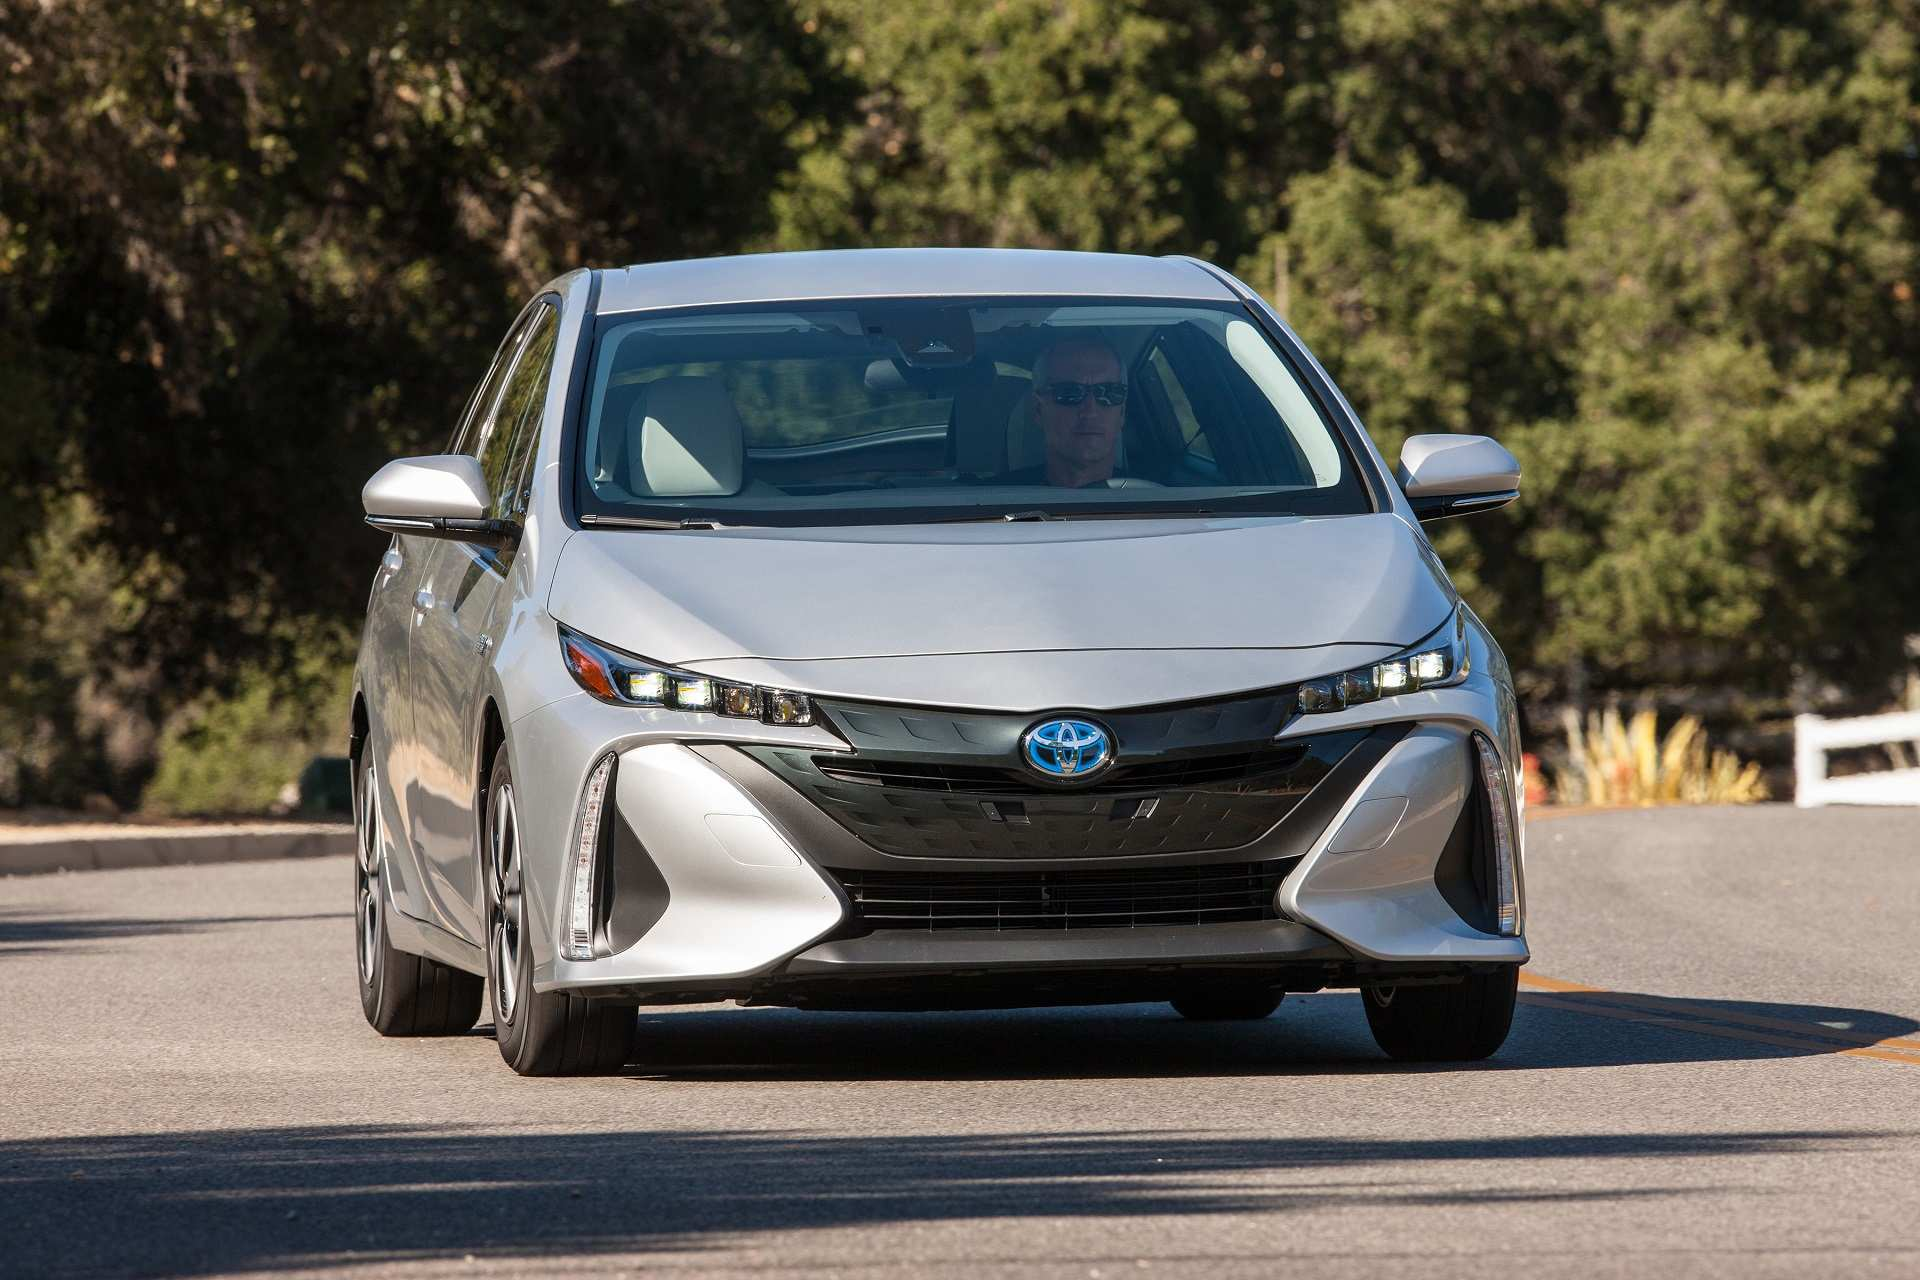 72 The Best Toyota Prius 2020 Release Date